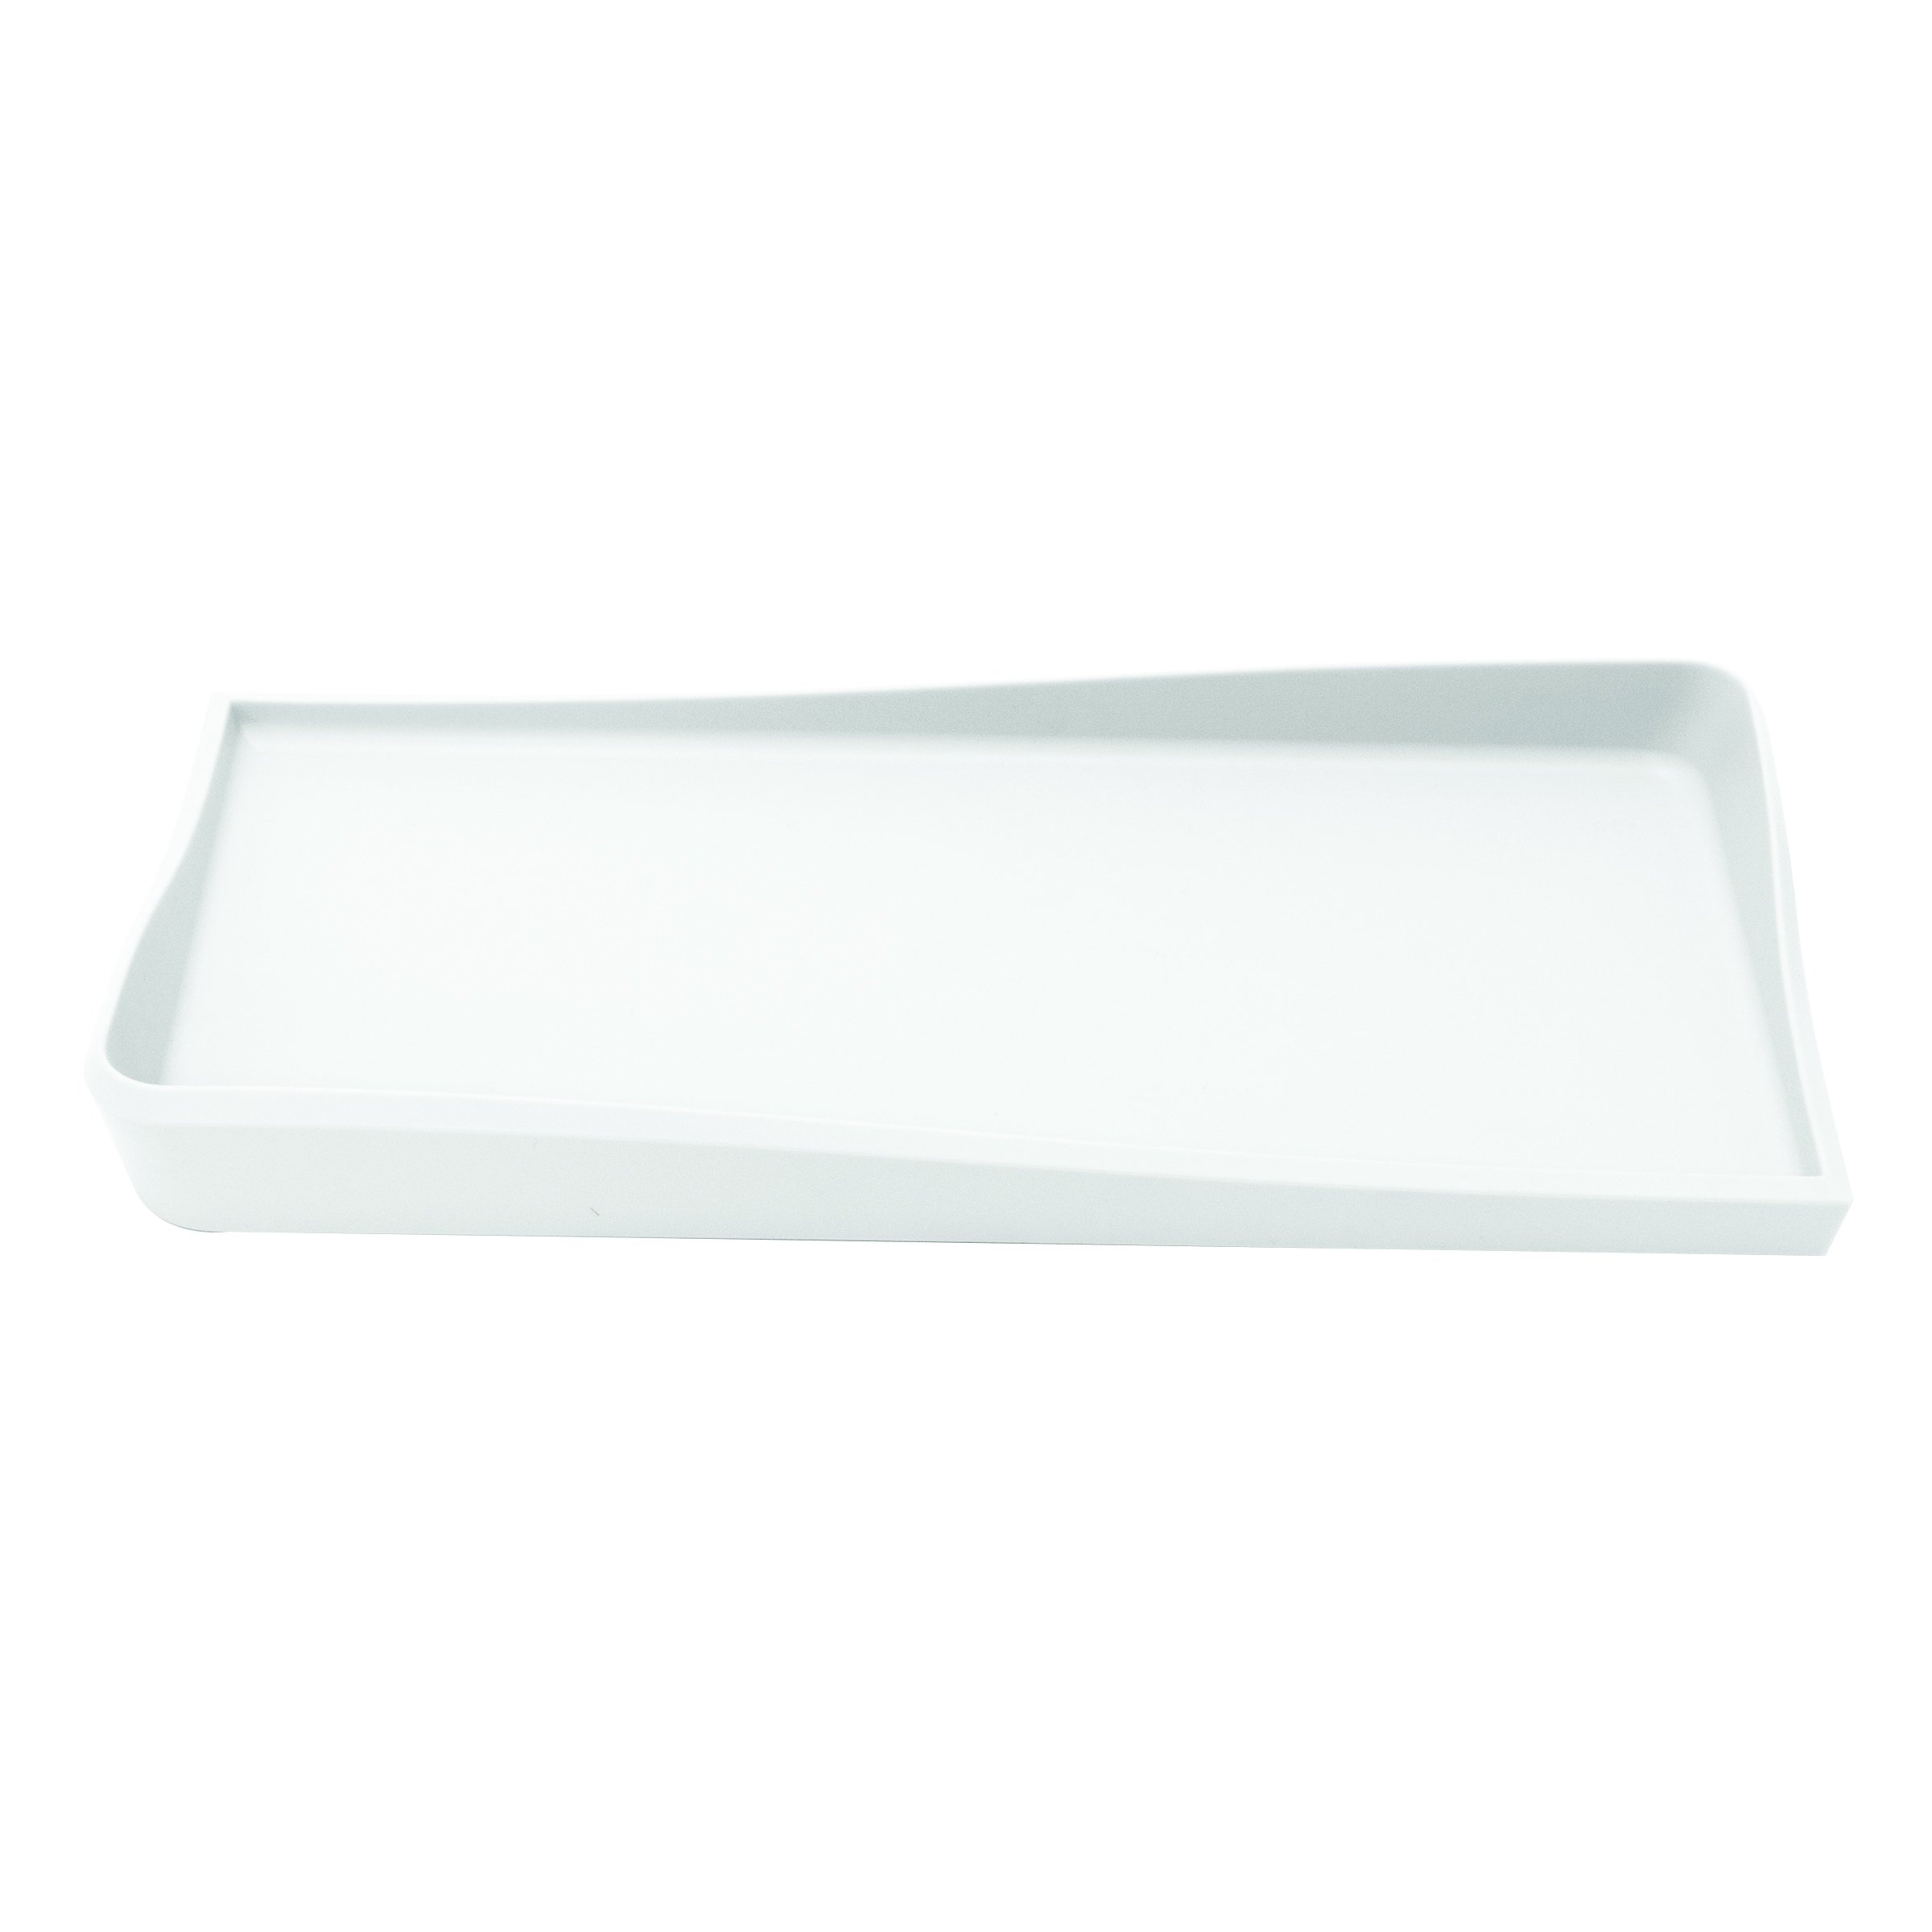 Silhouette Spaces Lifeboat Desk Tray, 12.1'' x 1.6'' x 5.8'', White (37536) by Silhouette Space